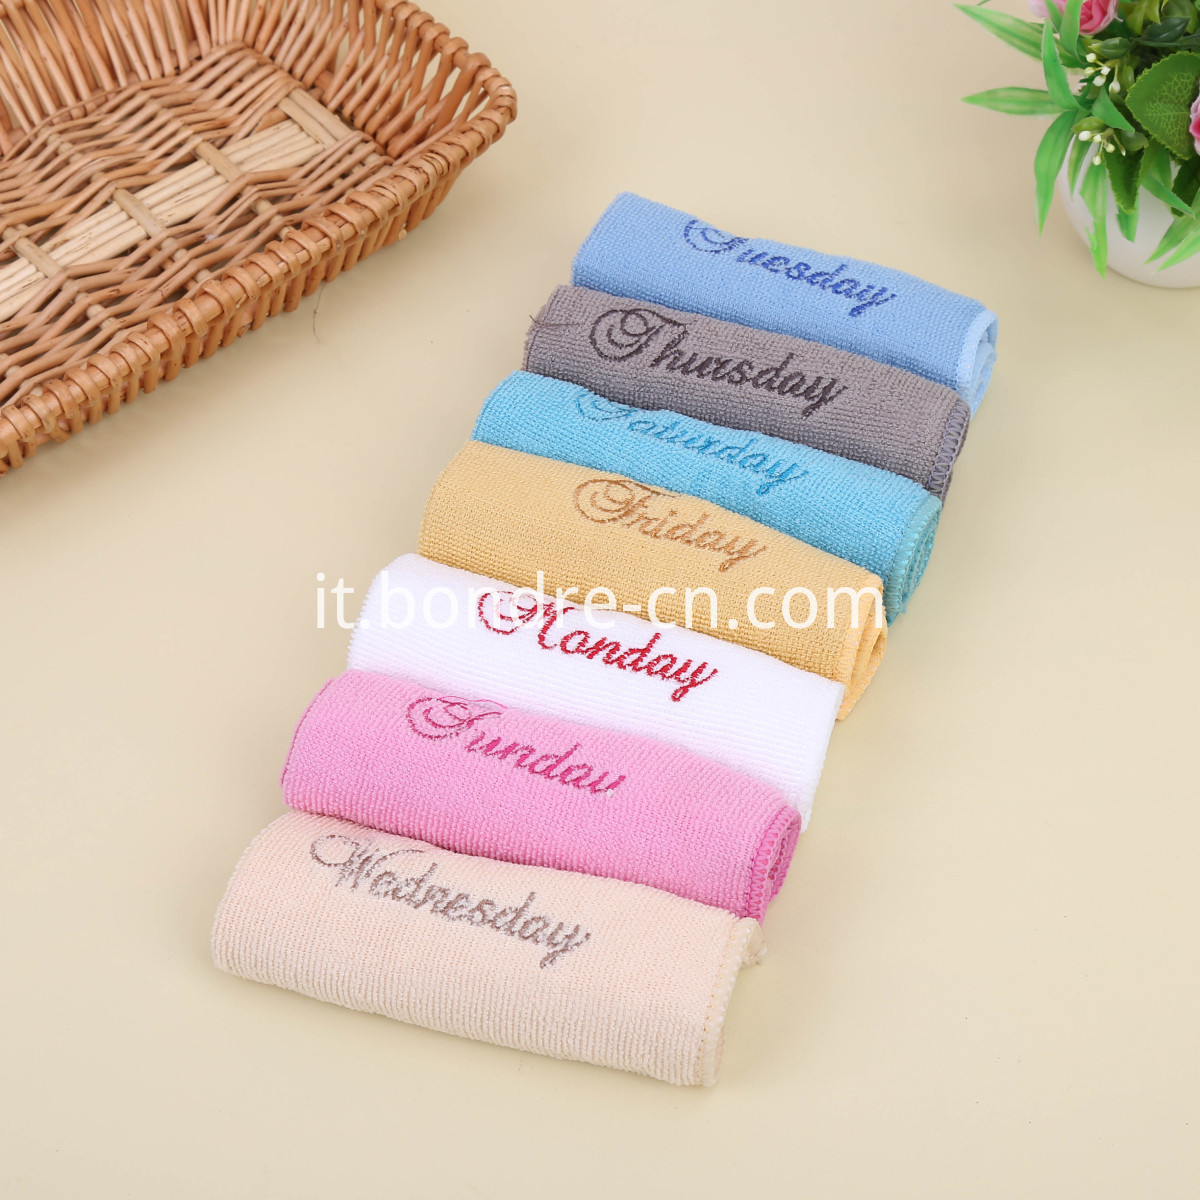 7pcs Week Towels Set (3)